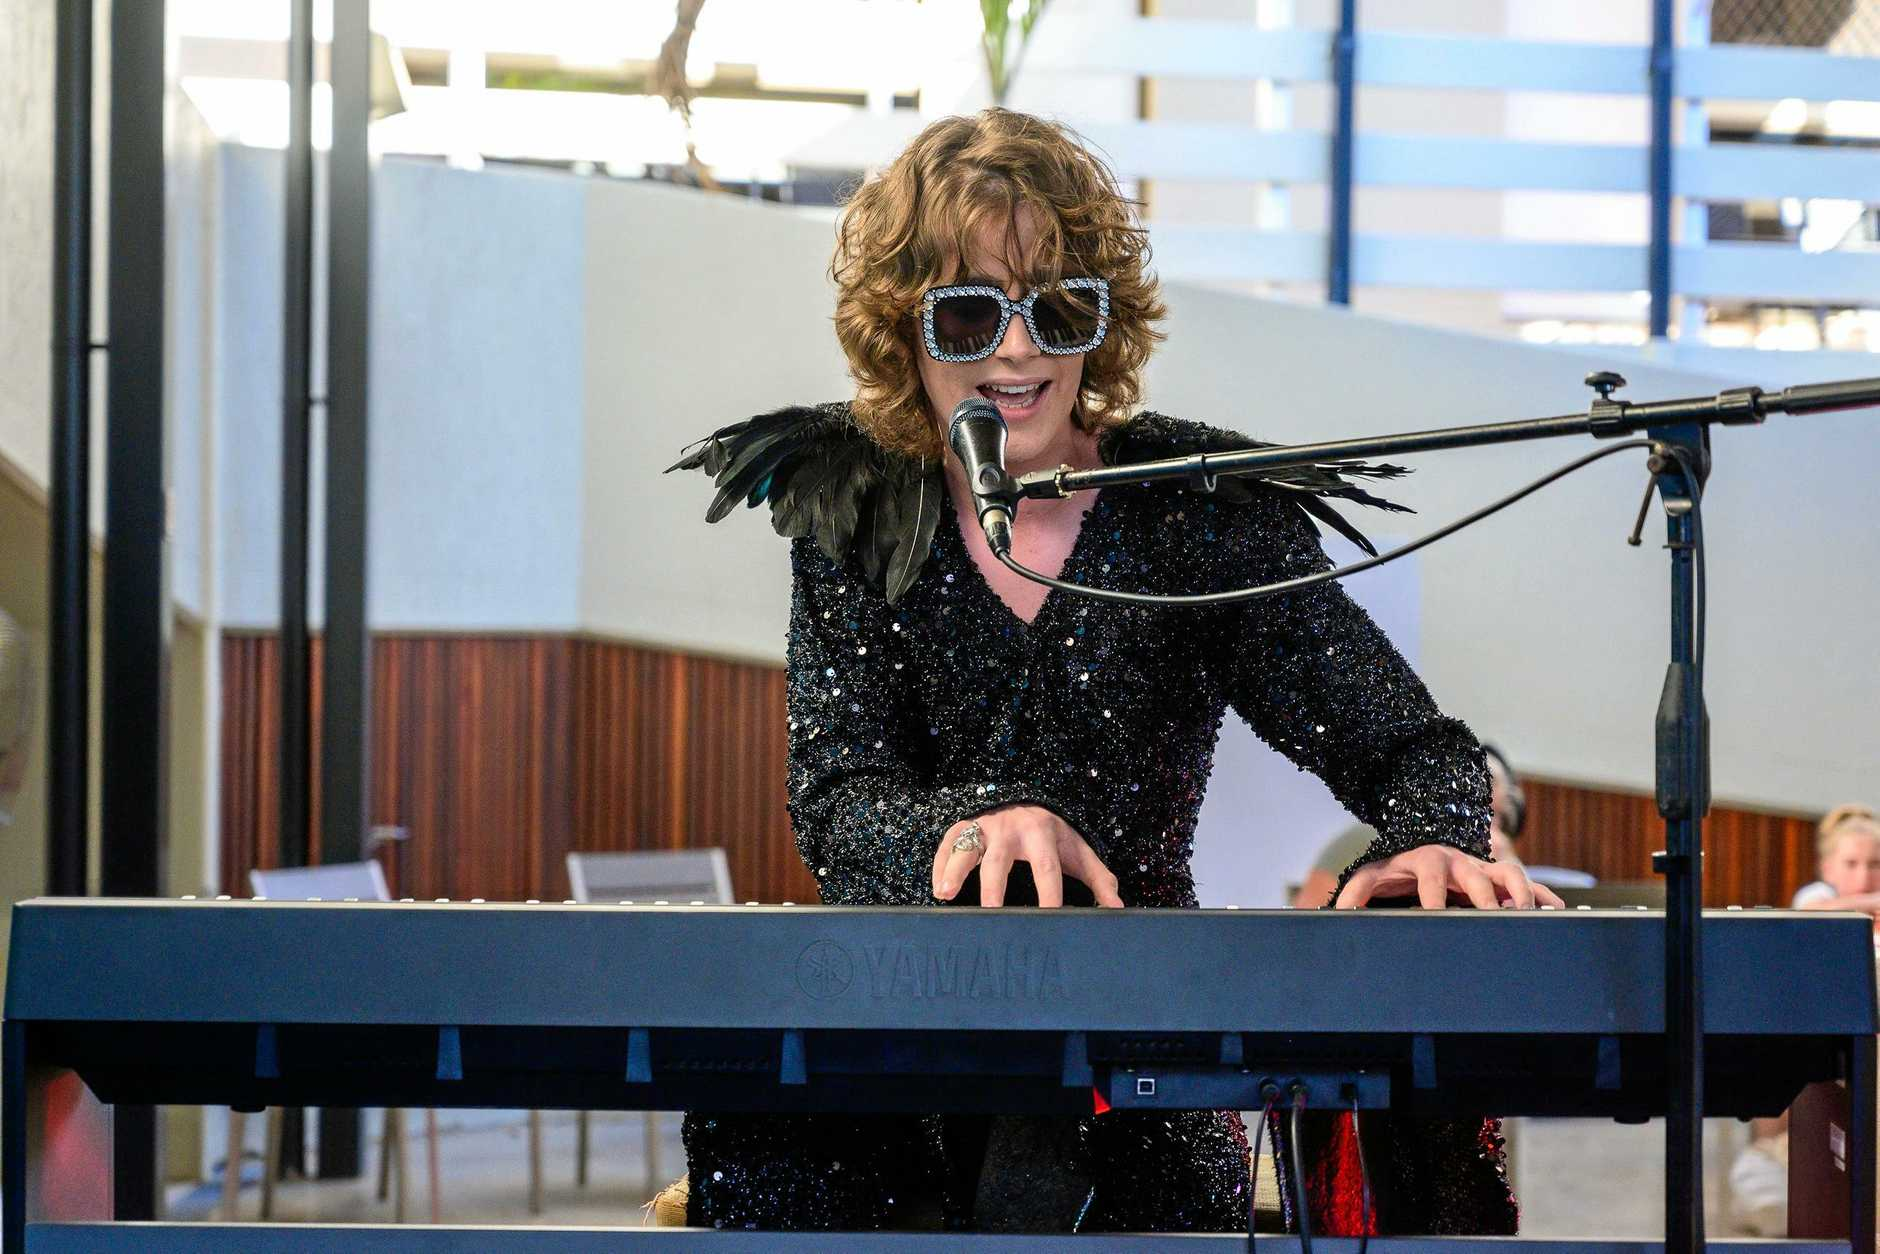 William Kelly performed his heart out on the piano during the grand final.